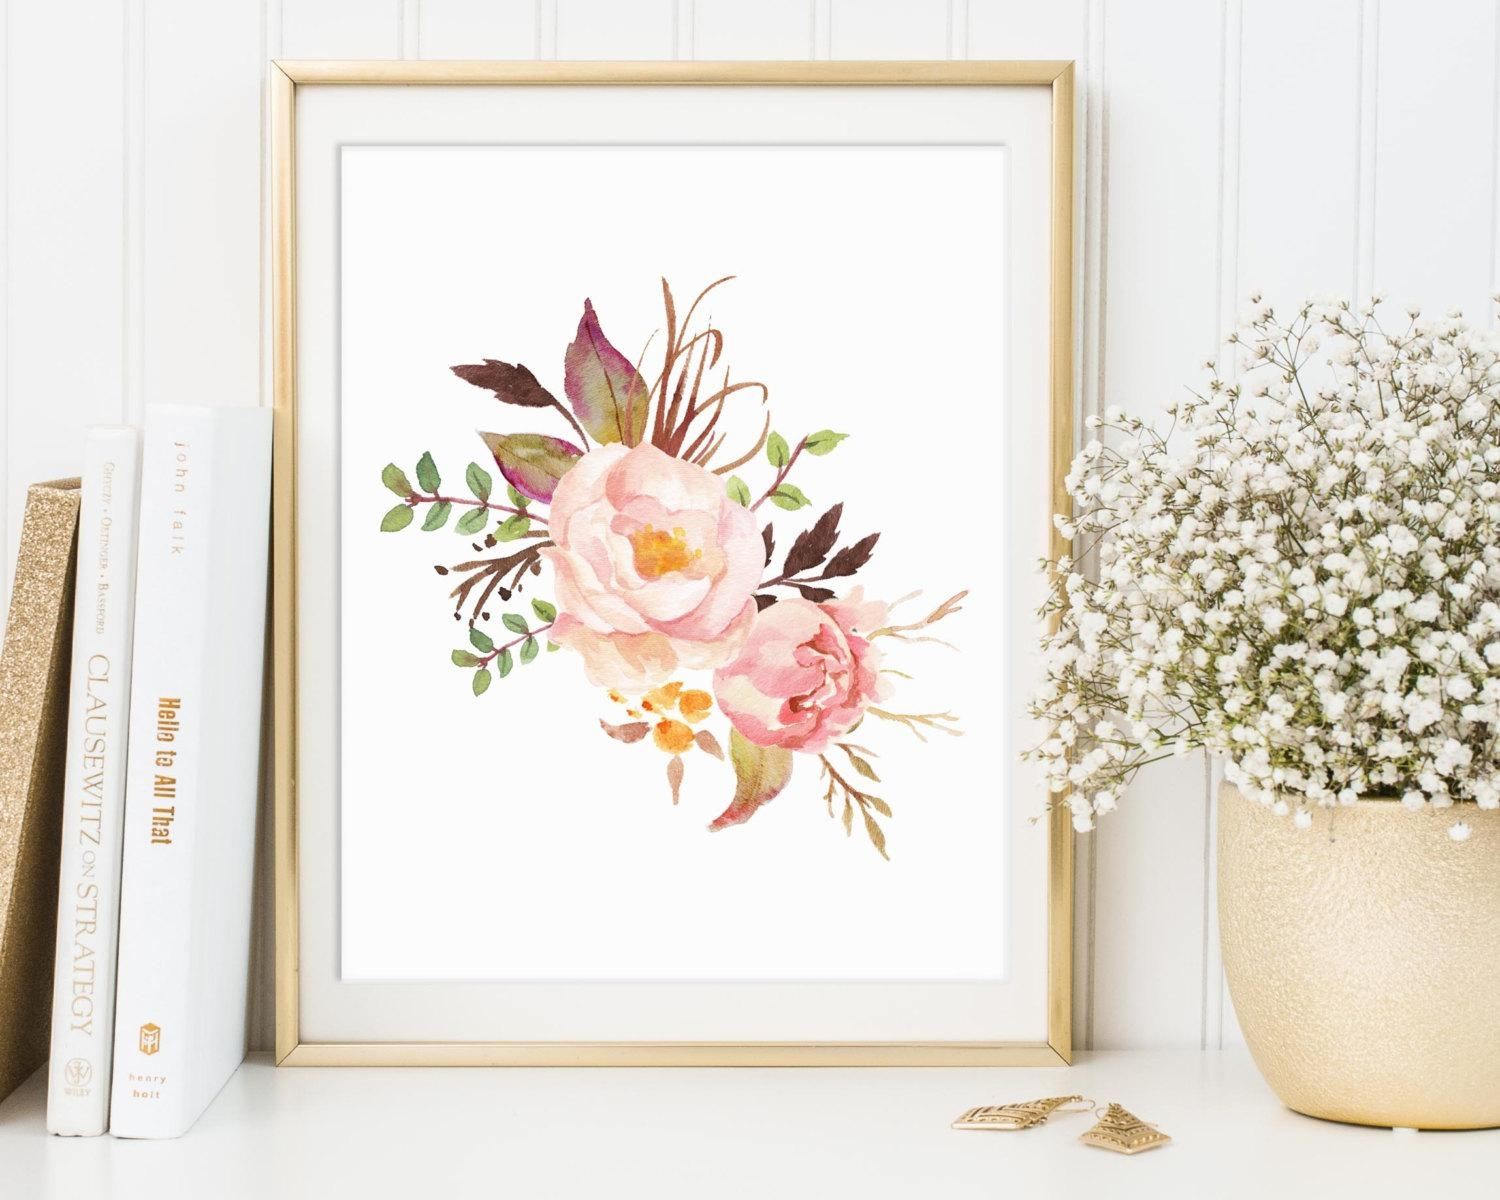 Floral Print Floral Decor Floral Wall Art Floral Printable Intended For Floral & Plant Wall Art (Image 9 of 20)